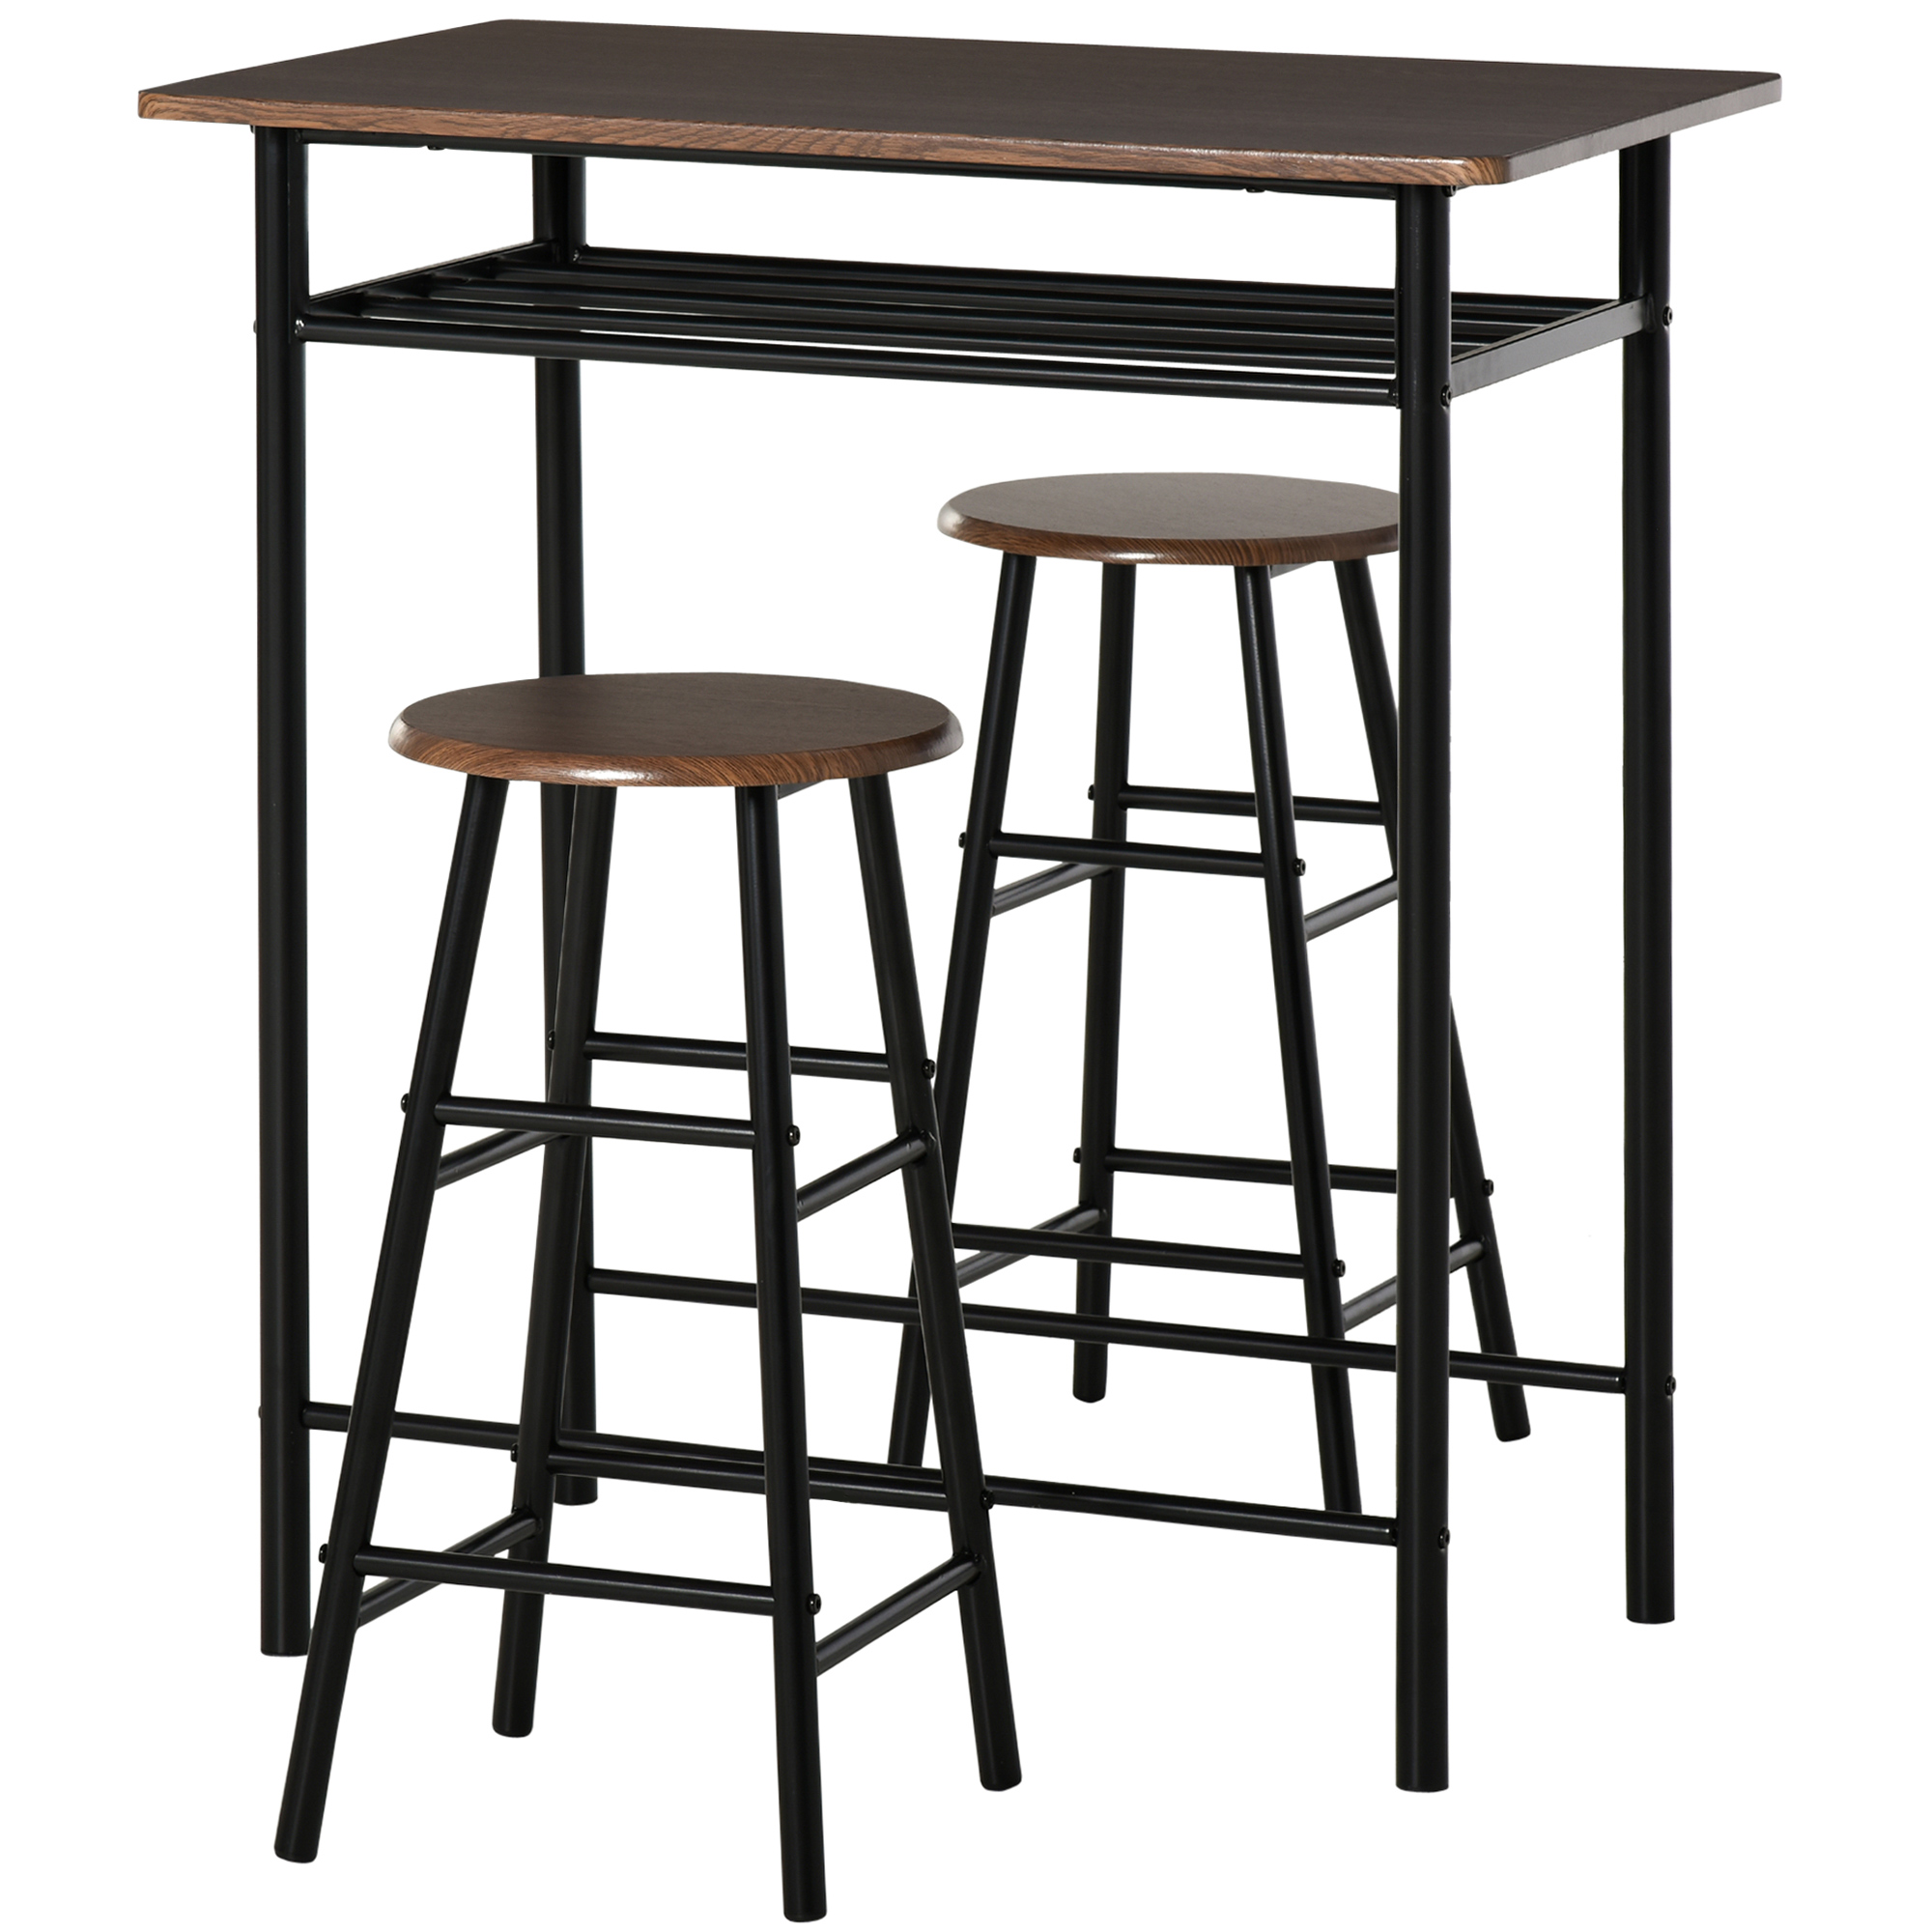 Ensemble table de bar design industriel + 2 tabourets MDF imitation bois noyer métal noir